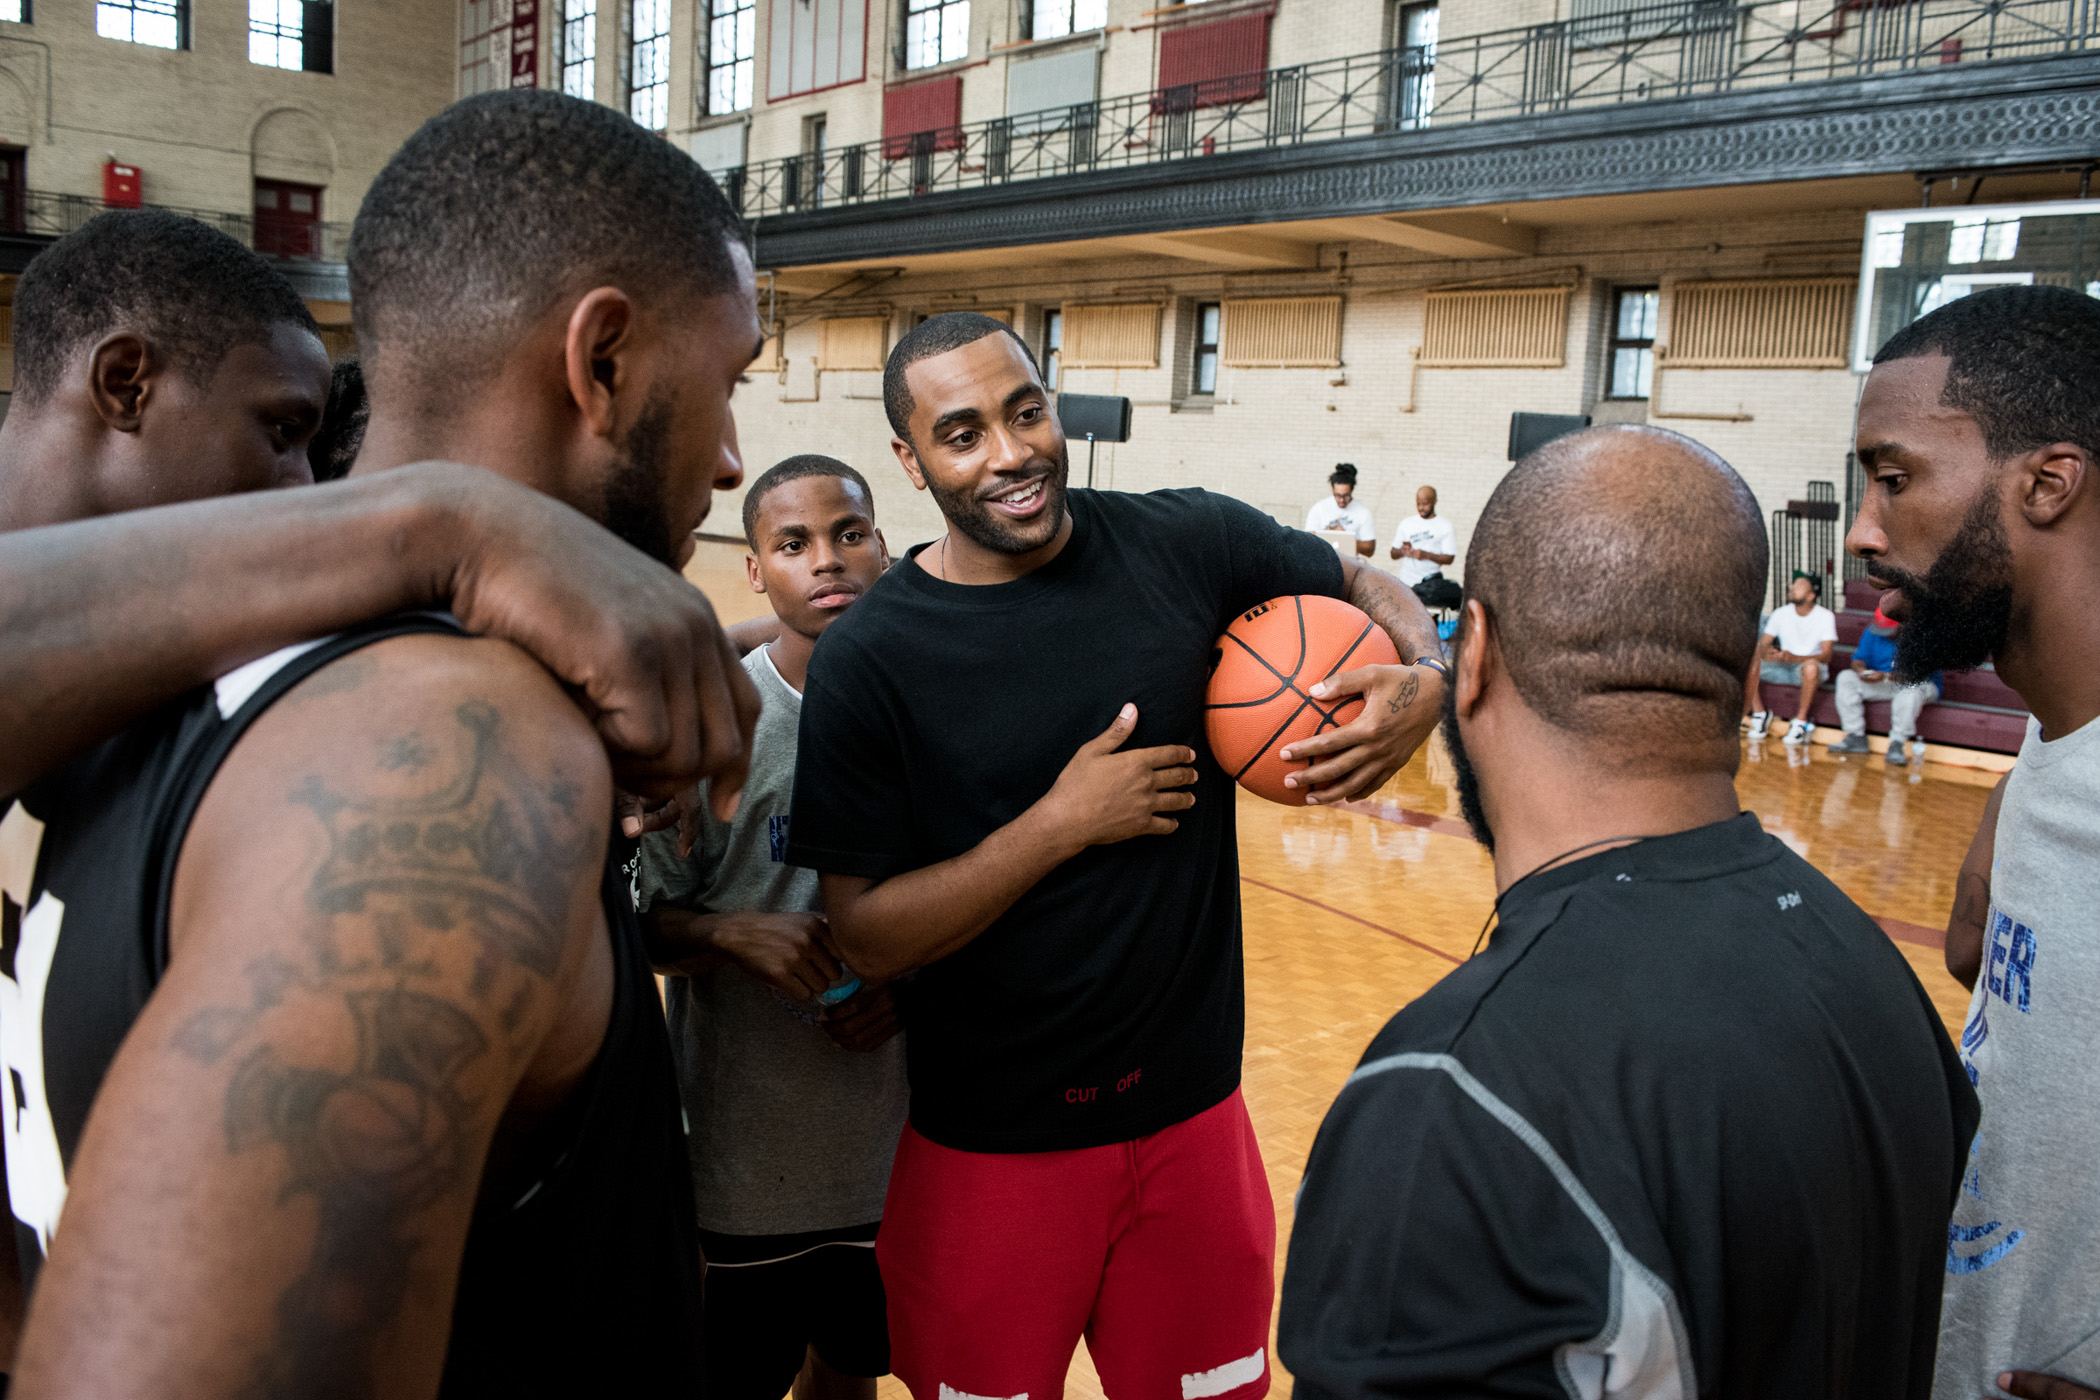 NBA player Wayne Ellington Jr. of the Miami Heat, center, speaks to team Philadelphia No. 2 before its finals matchup against Camden, NJ during the first annual Philadelphia Peace Games tournament inside the Girard College Gymnasium in Philadelphia on Saturday, Aug. 20, 2016. Ellington Jr. is a Philadelphia native who lost his father, Wayne Ellington Sr., on Nov. 9, 2014 to gun violence on the 5200 block of Marion Street in Philadelphia's Germantown neighborhood. Since then Ellington Jr. has been an outspoken athlete about the violence going on in his city and across the nation. (Michael Ares for ESPN)